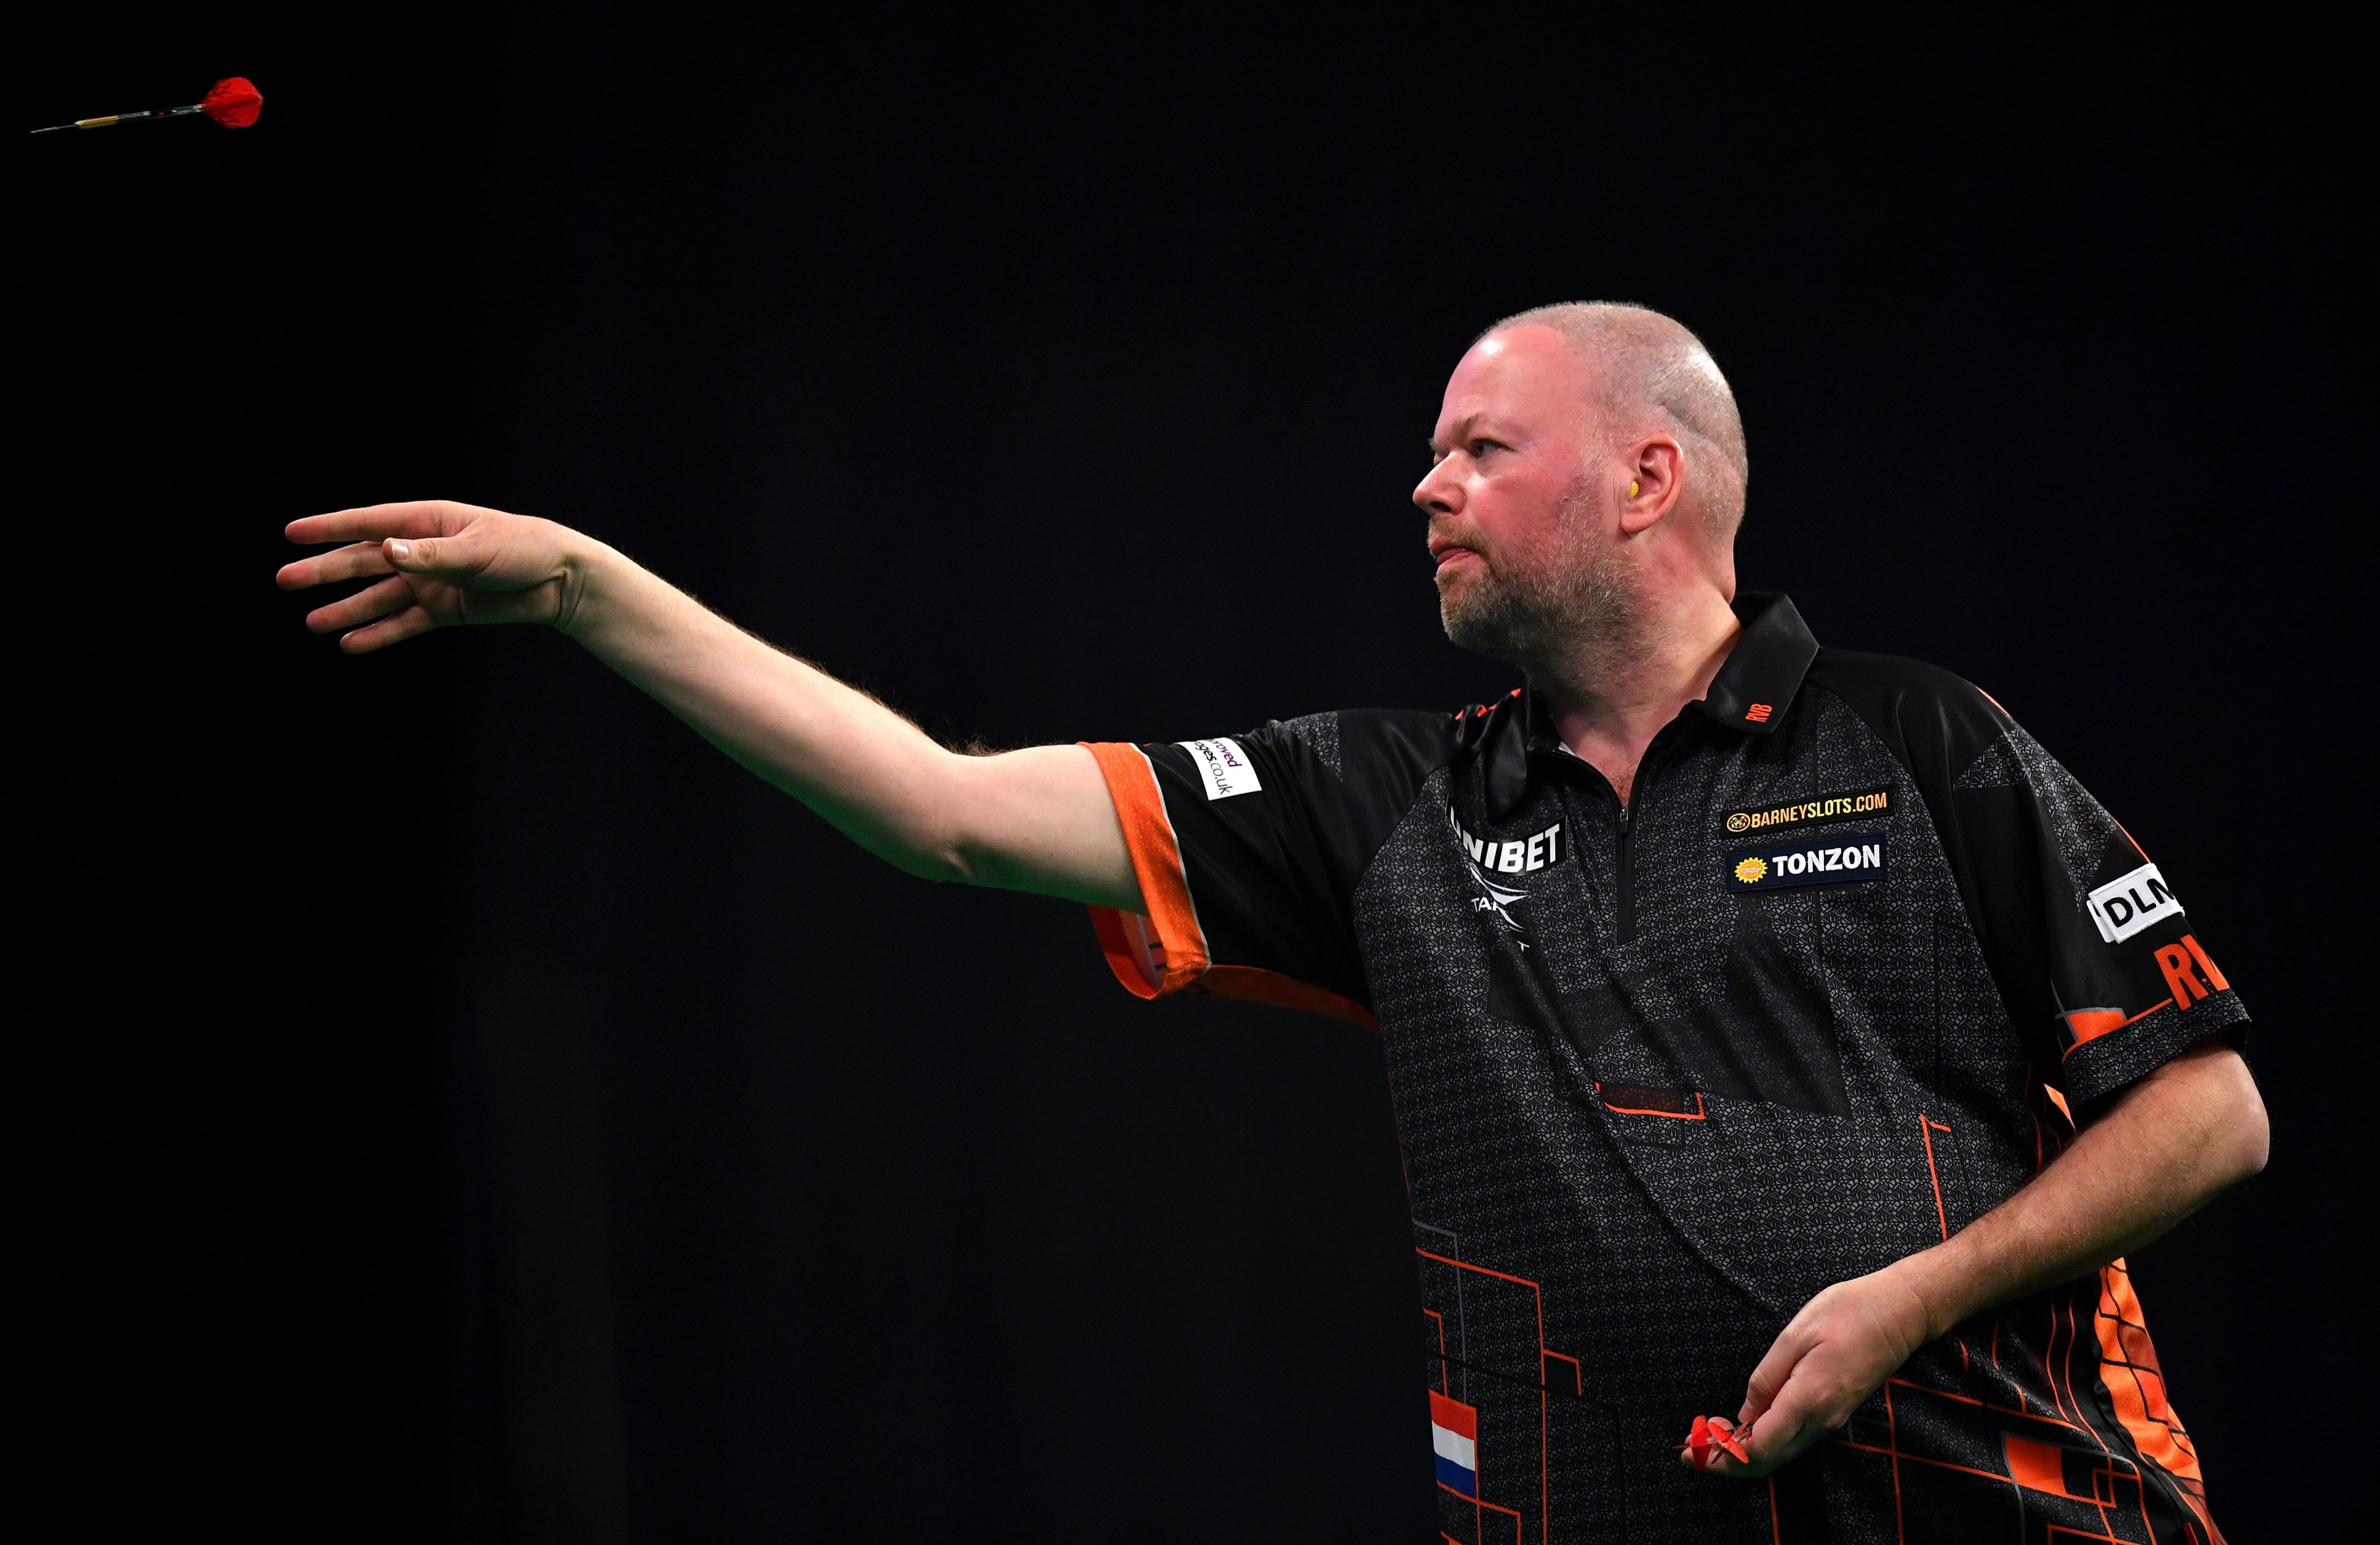 Darts icon Raymond van Barneveld's was on the brink of a divorce before he was snapped kissing a mystery blonde